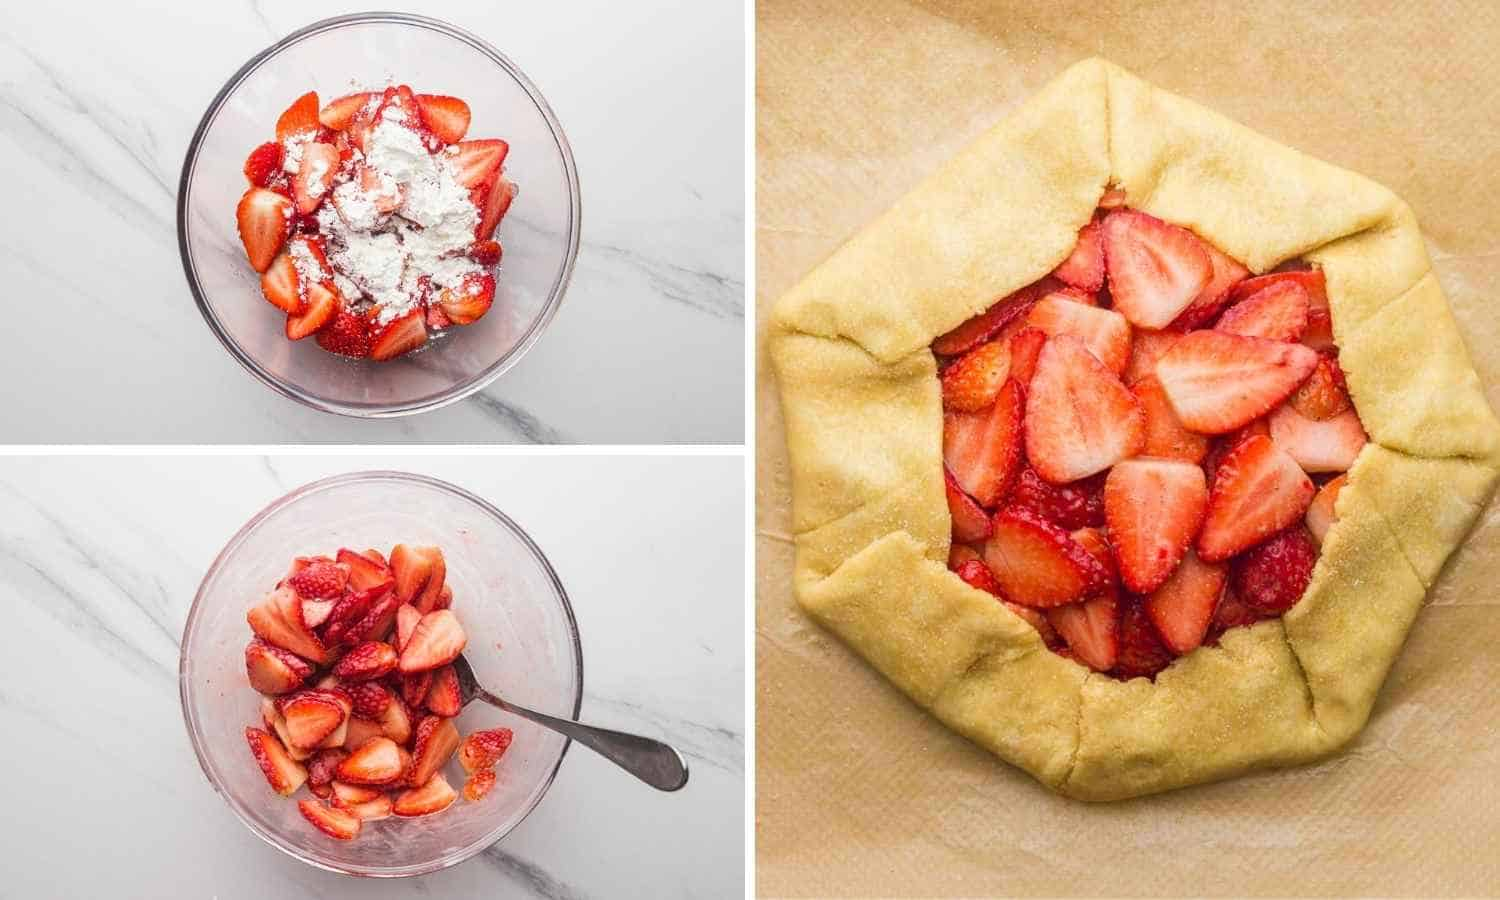 Making the strawberry filling for strawberry galette